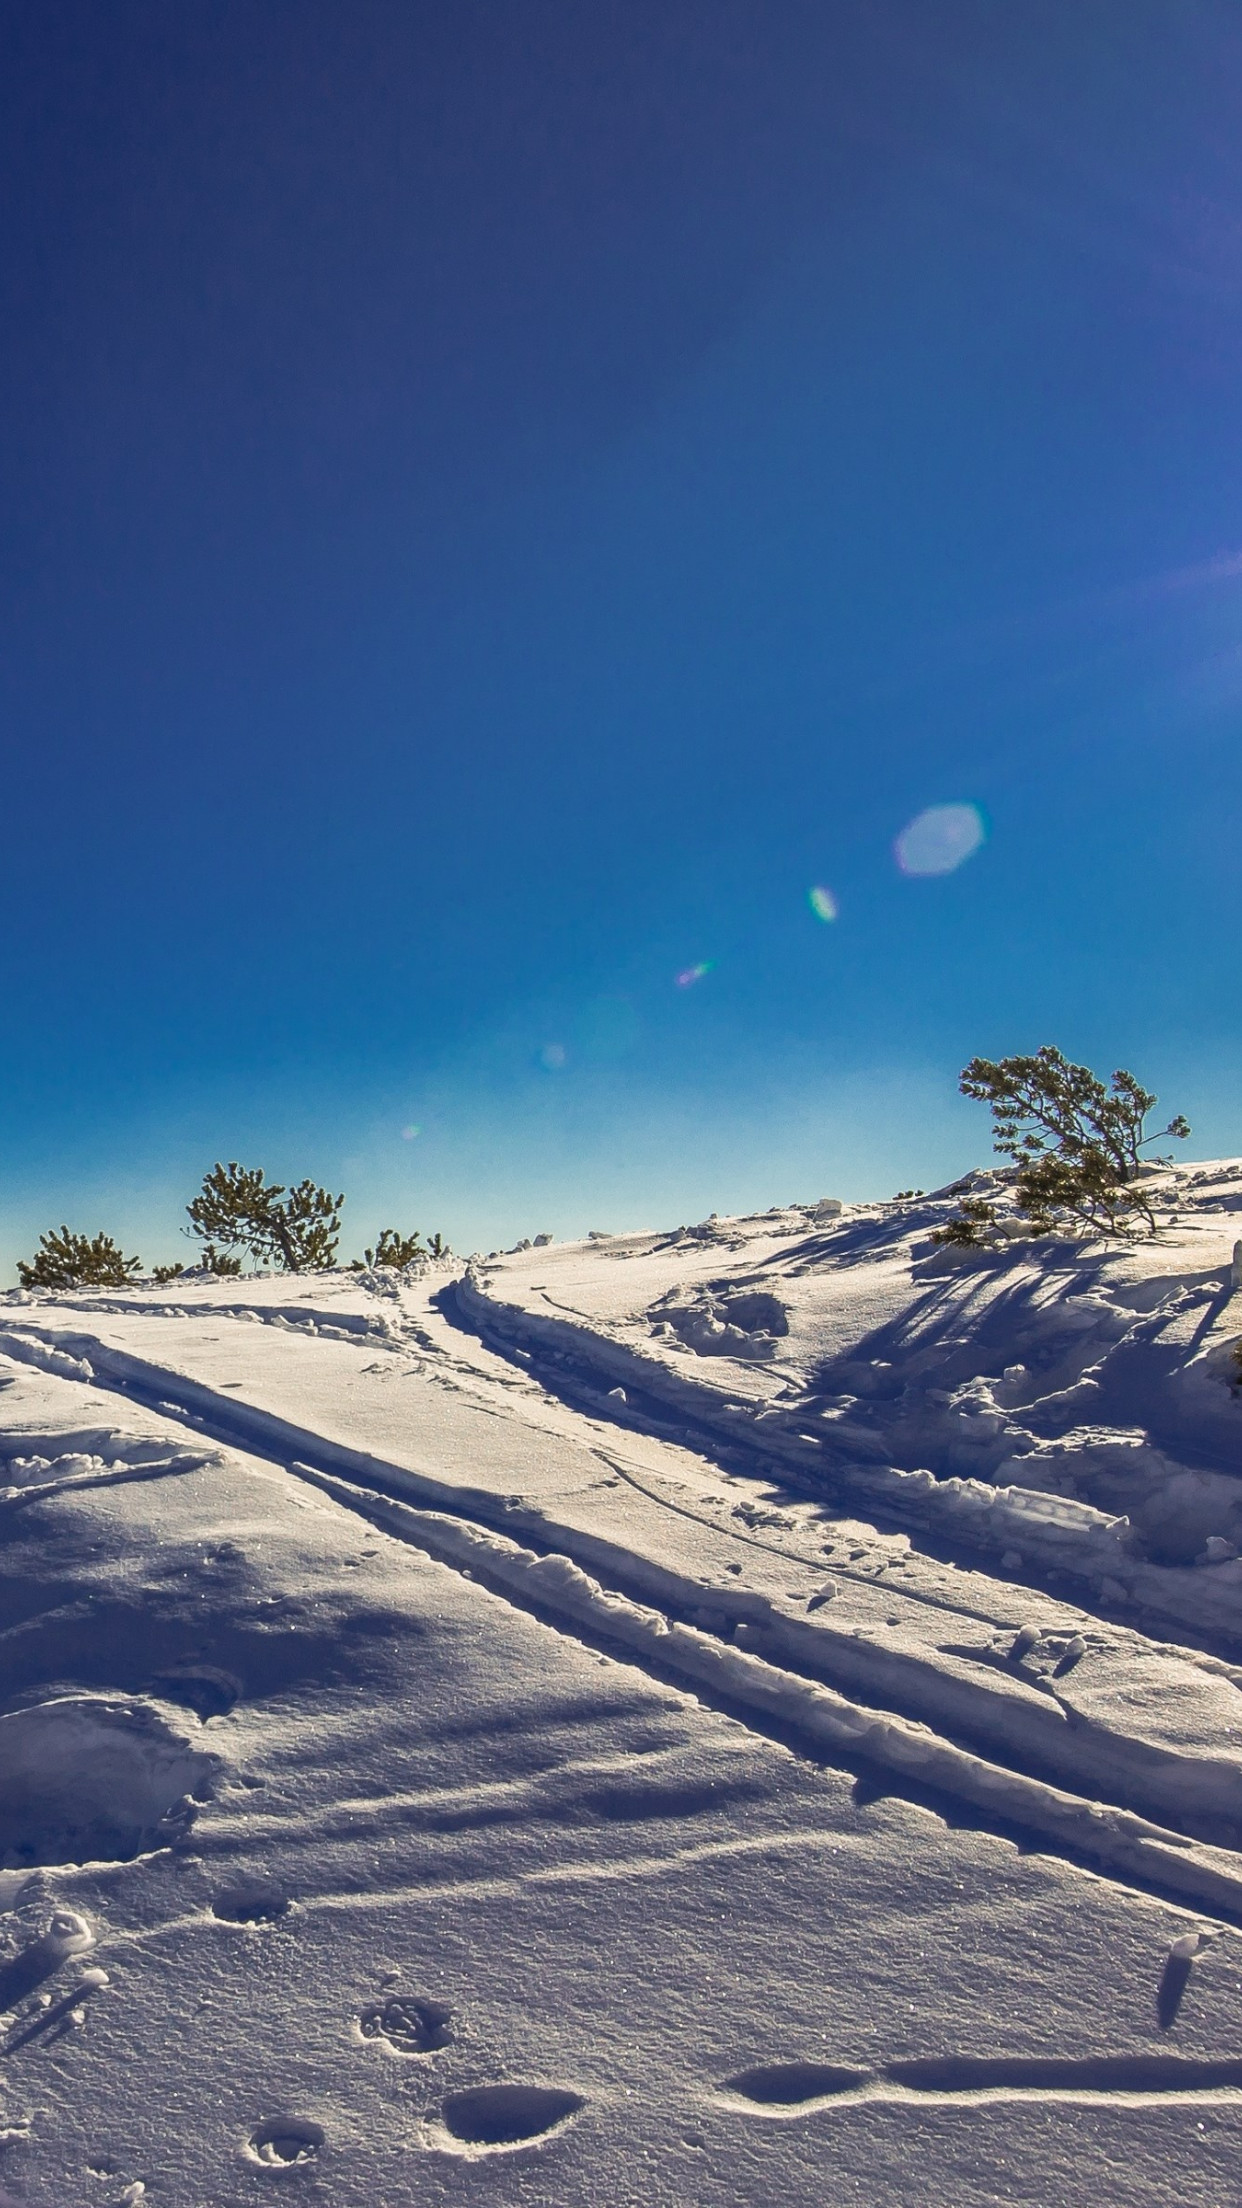 Sunny day in this Winter landscape wallpaper 1242x2208